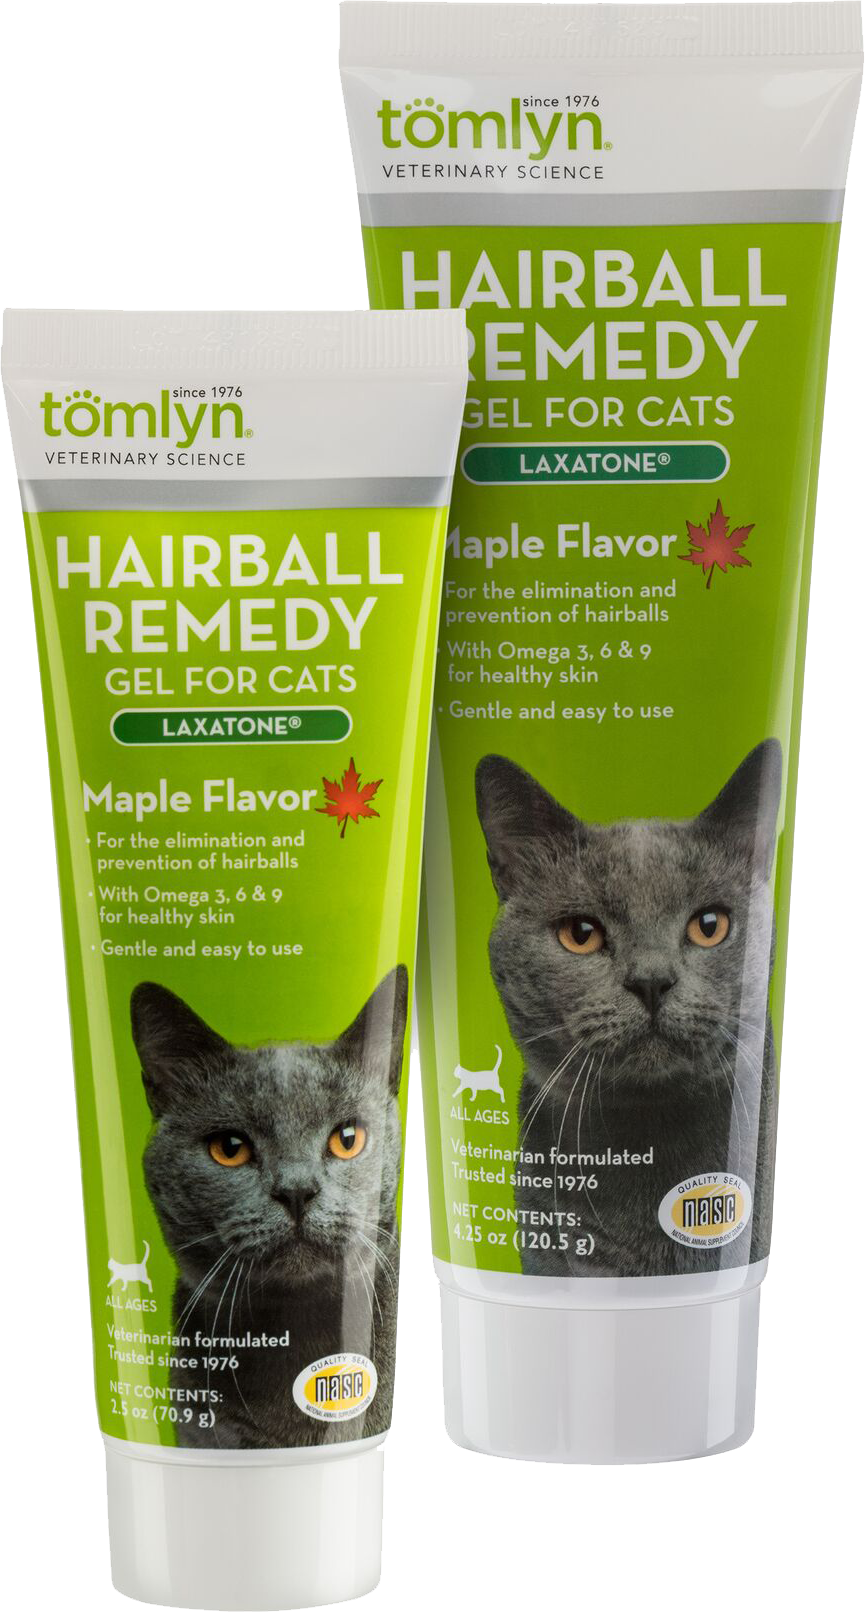 Tomlyn Laxatone Original Hairball Remedy